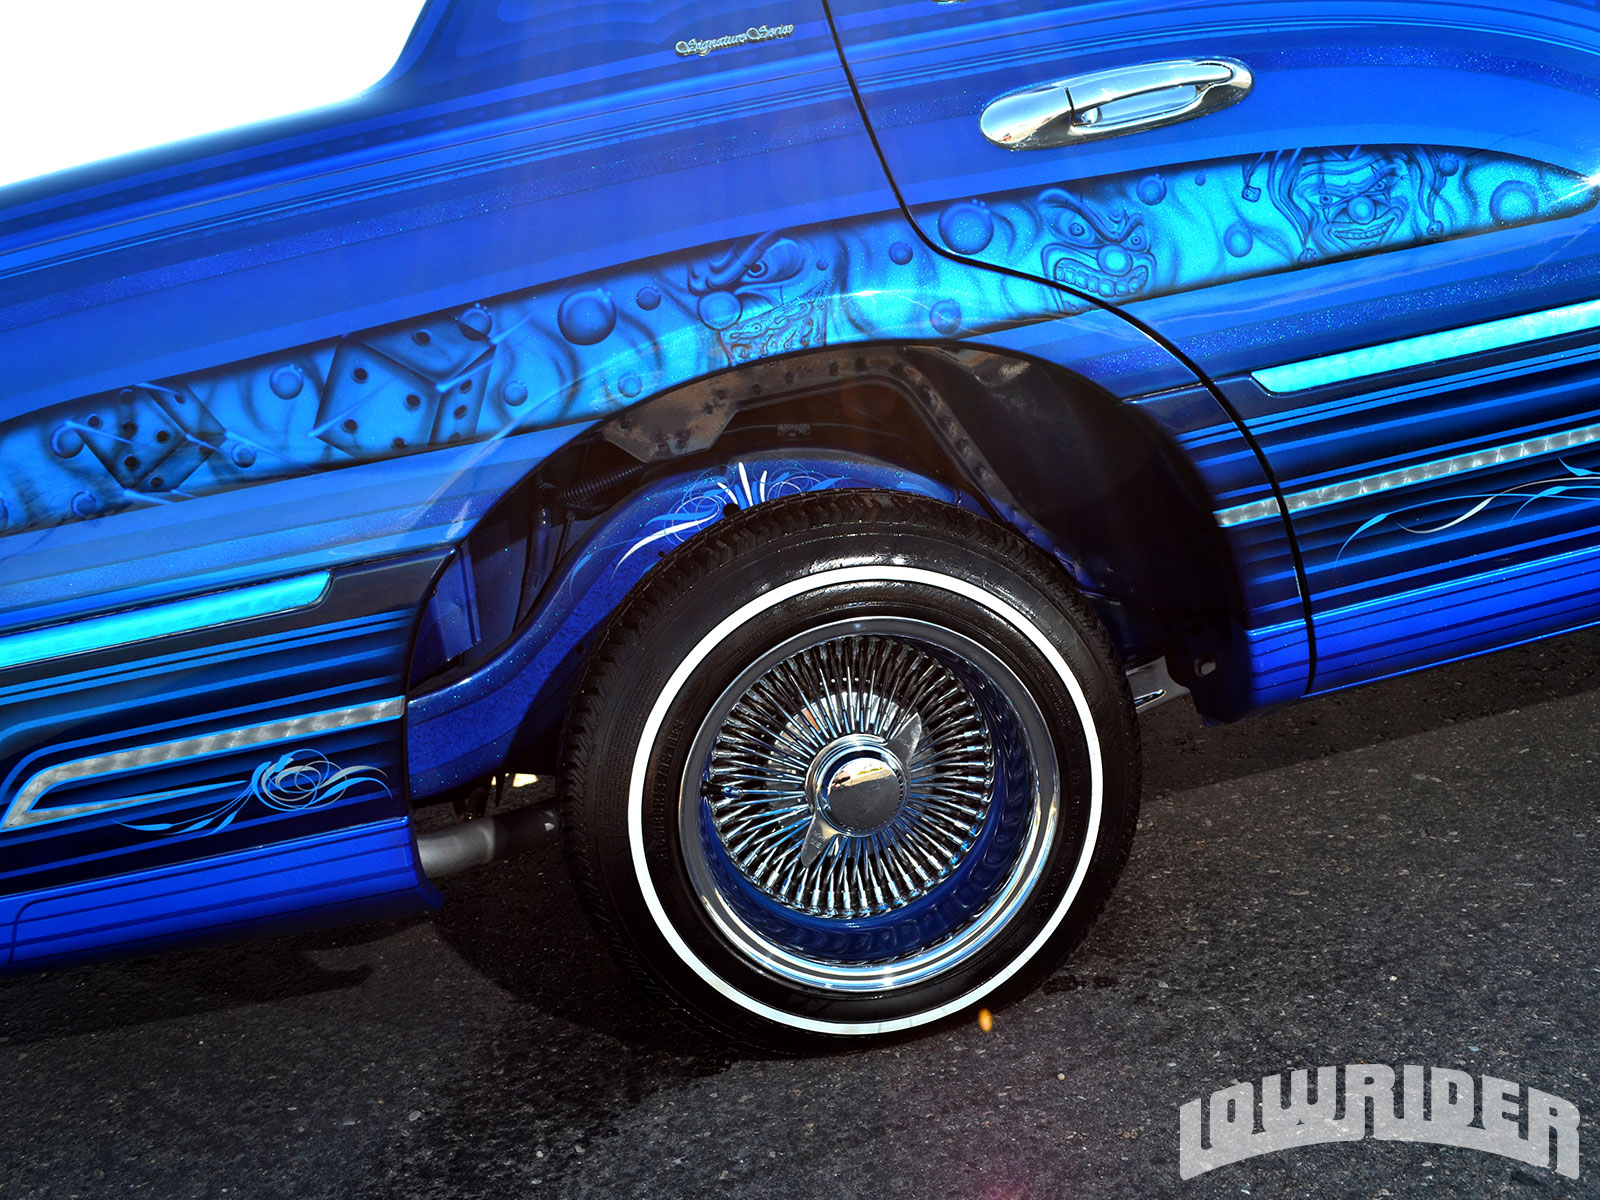 1998 Lincoln Town Car Painted 100 Spokes With Knock Offs Lowrider